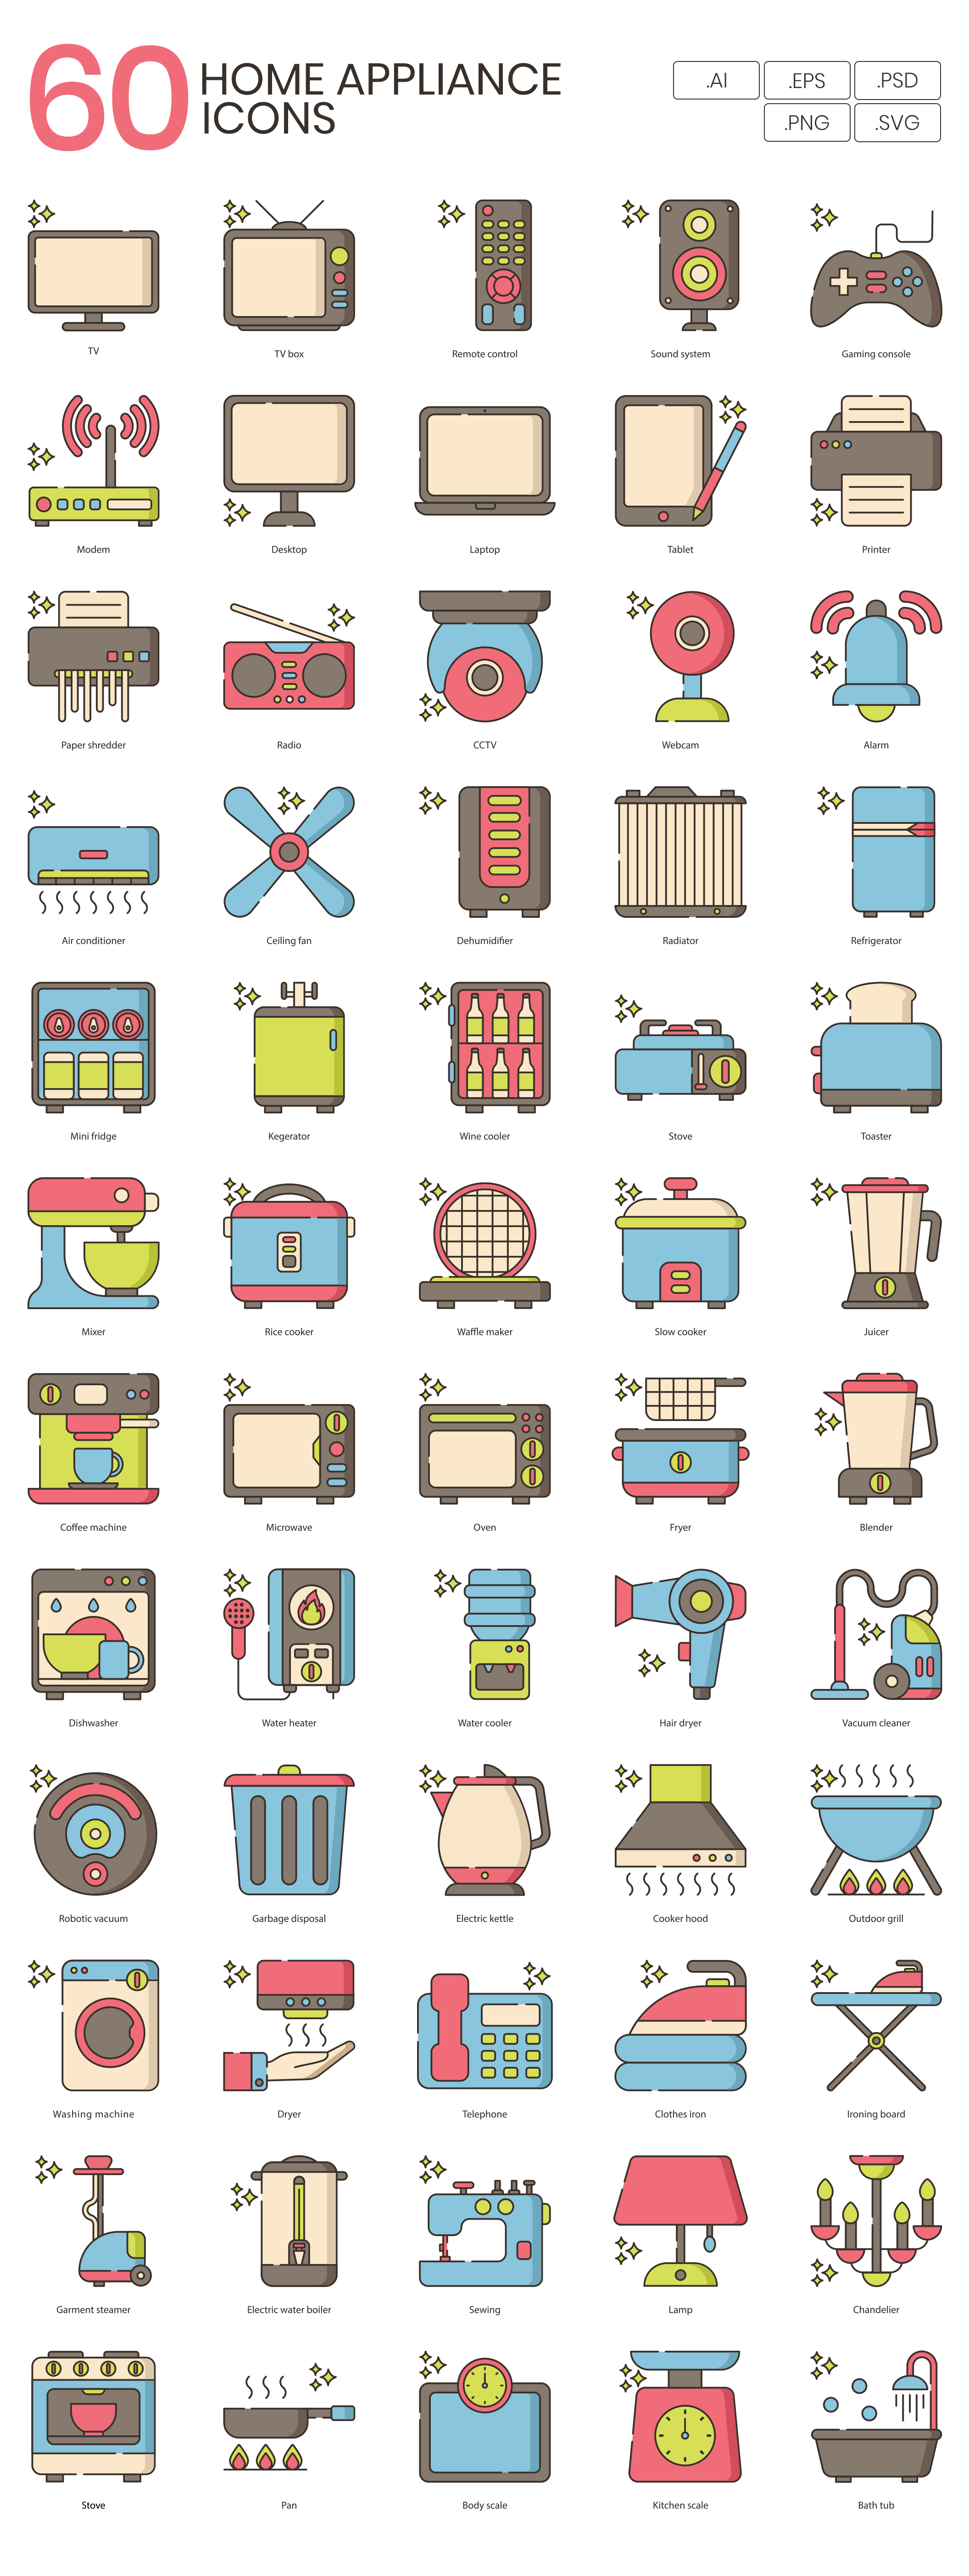 Home Appliance Vector Icons Preview Image